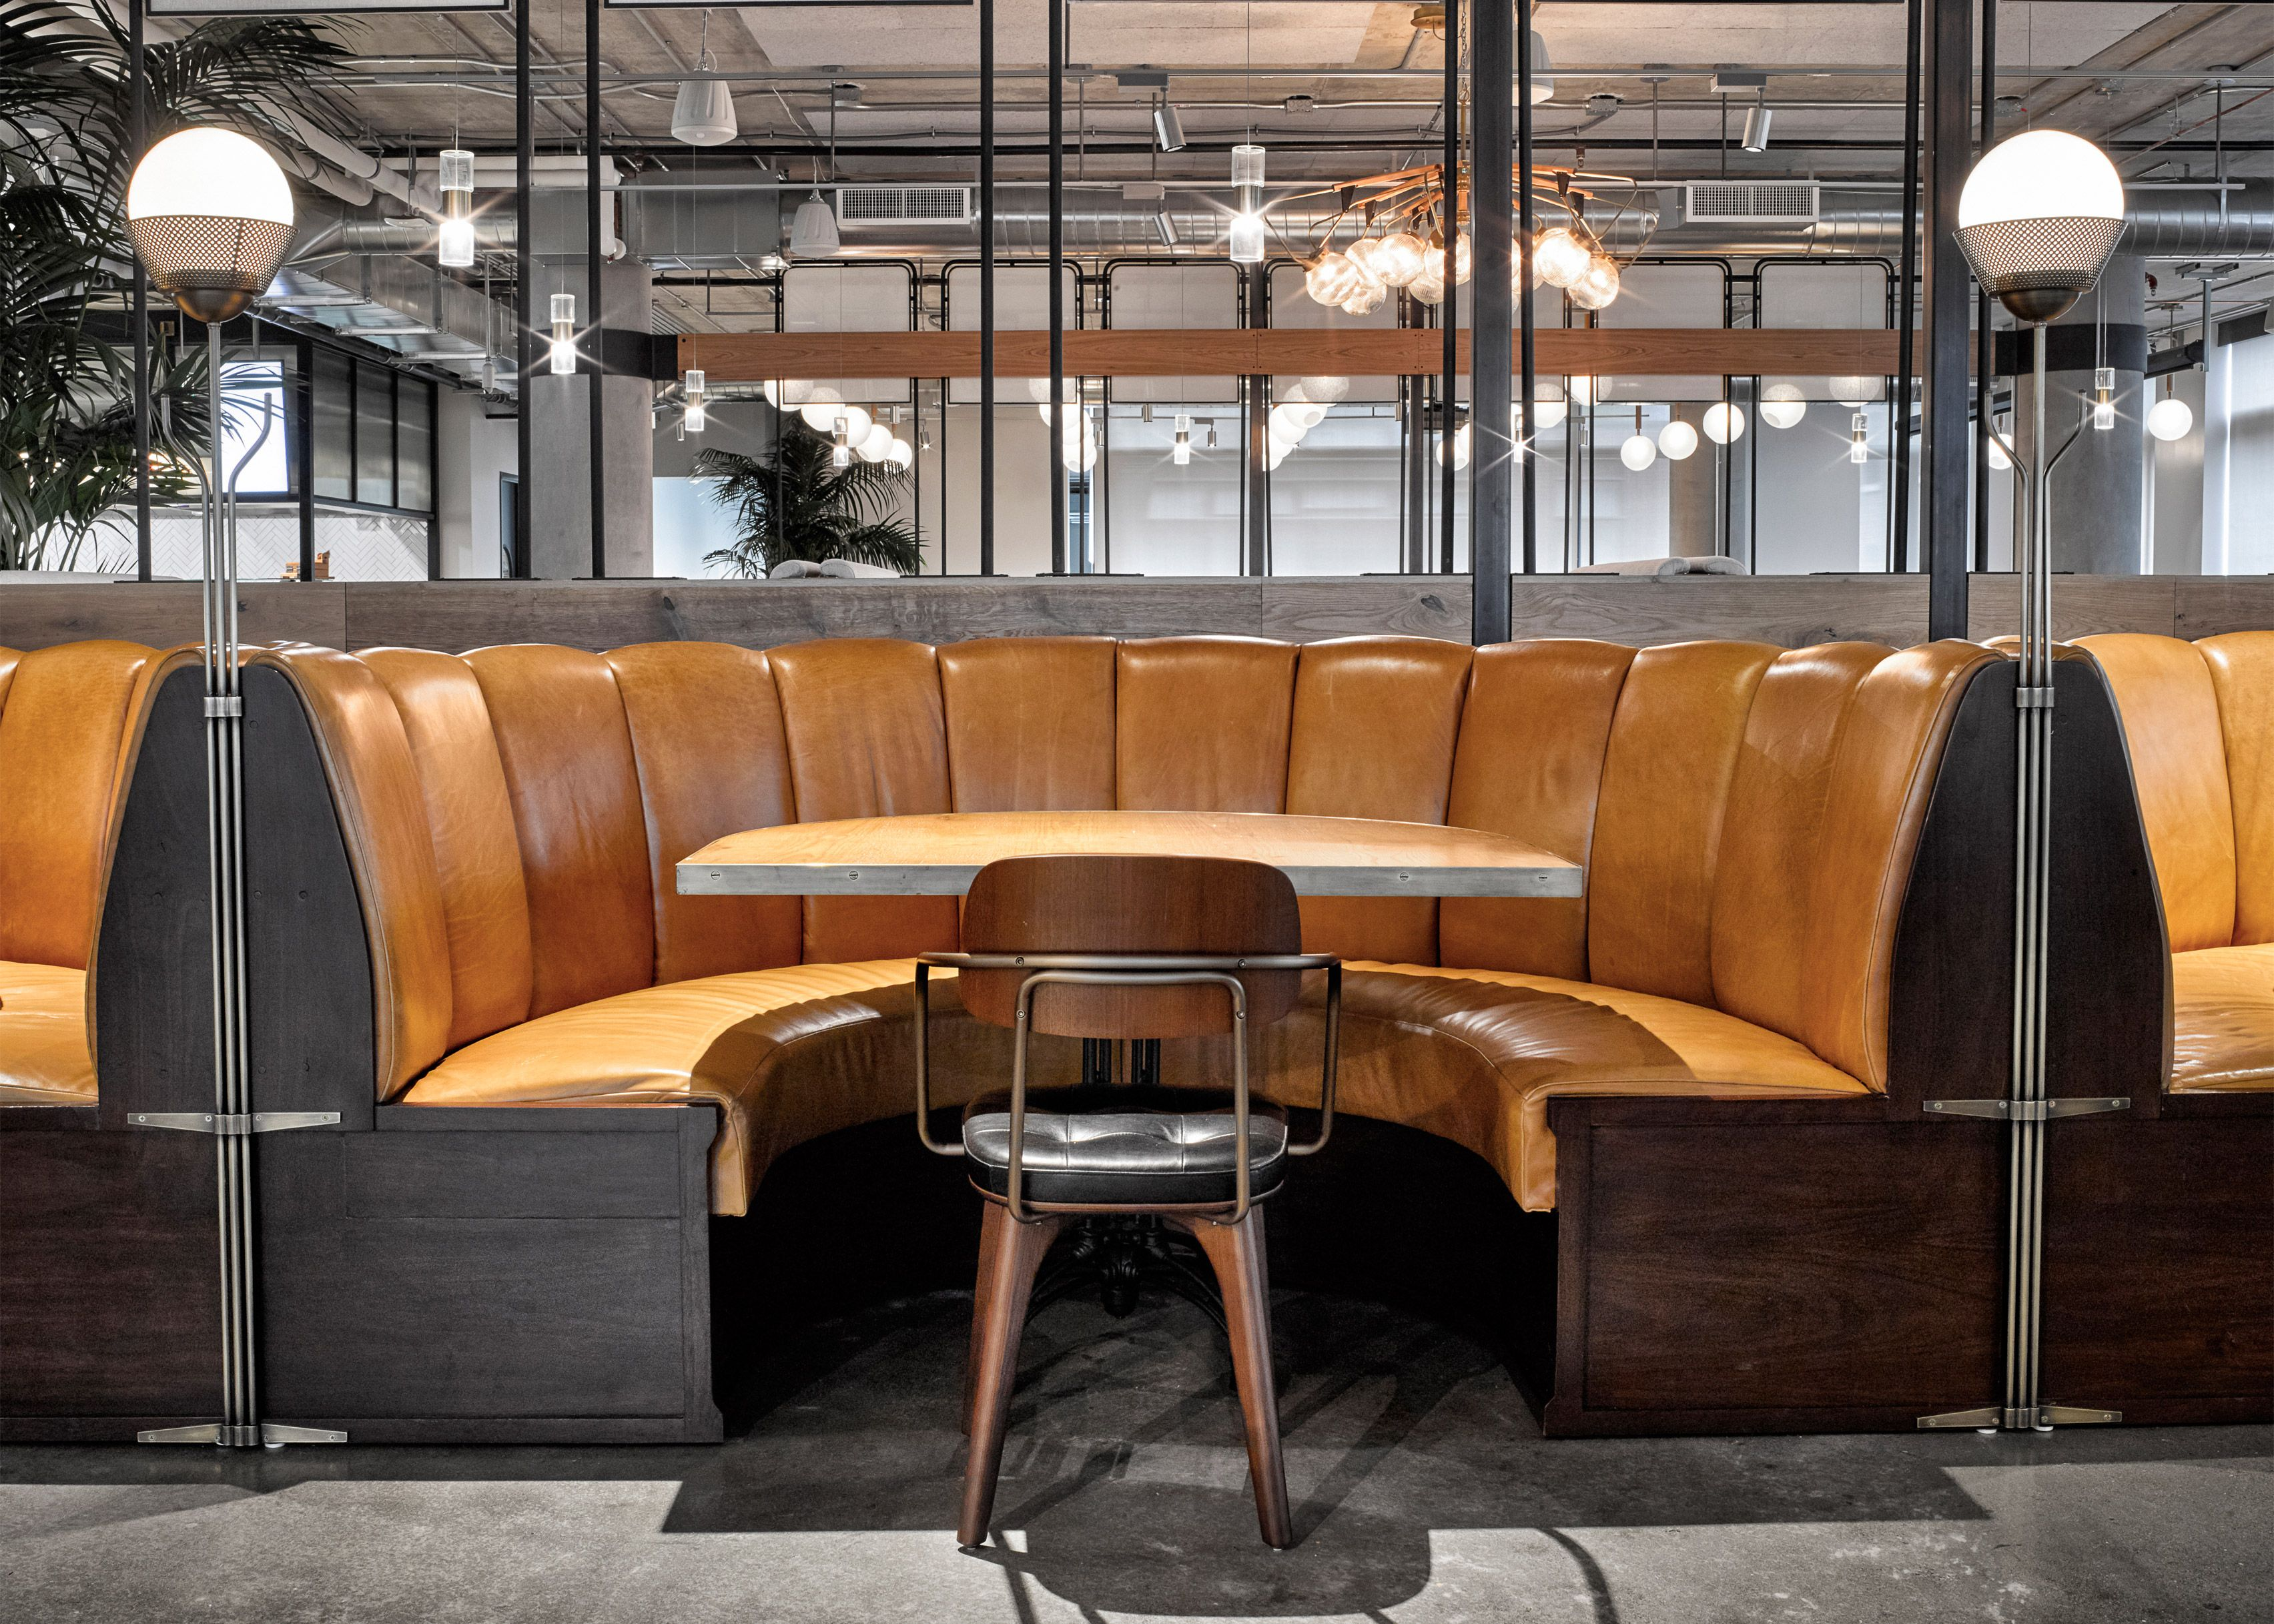 dropbox opens industrial style cafeteria at california